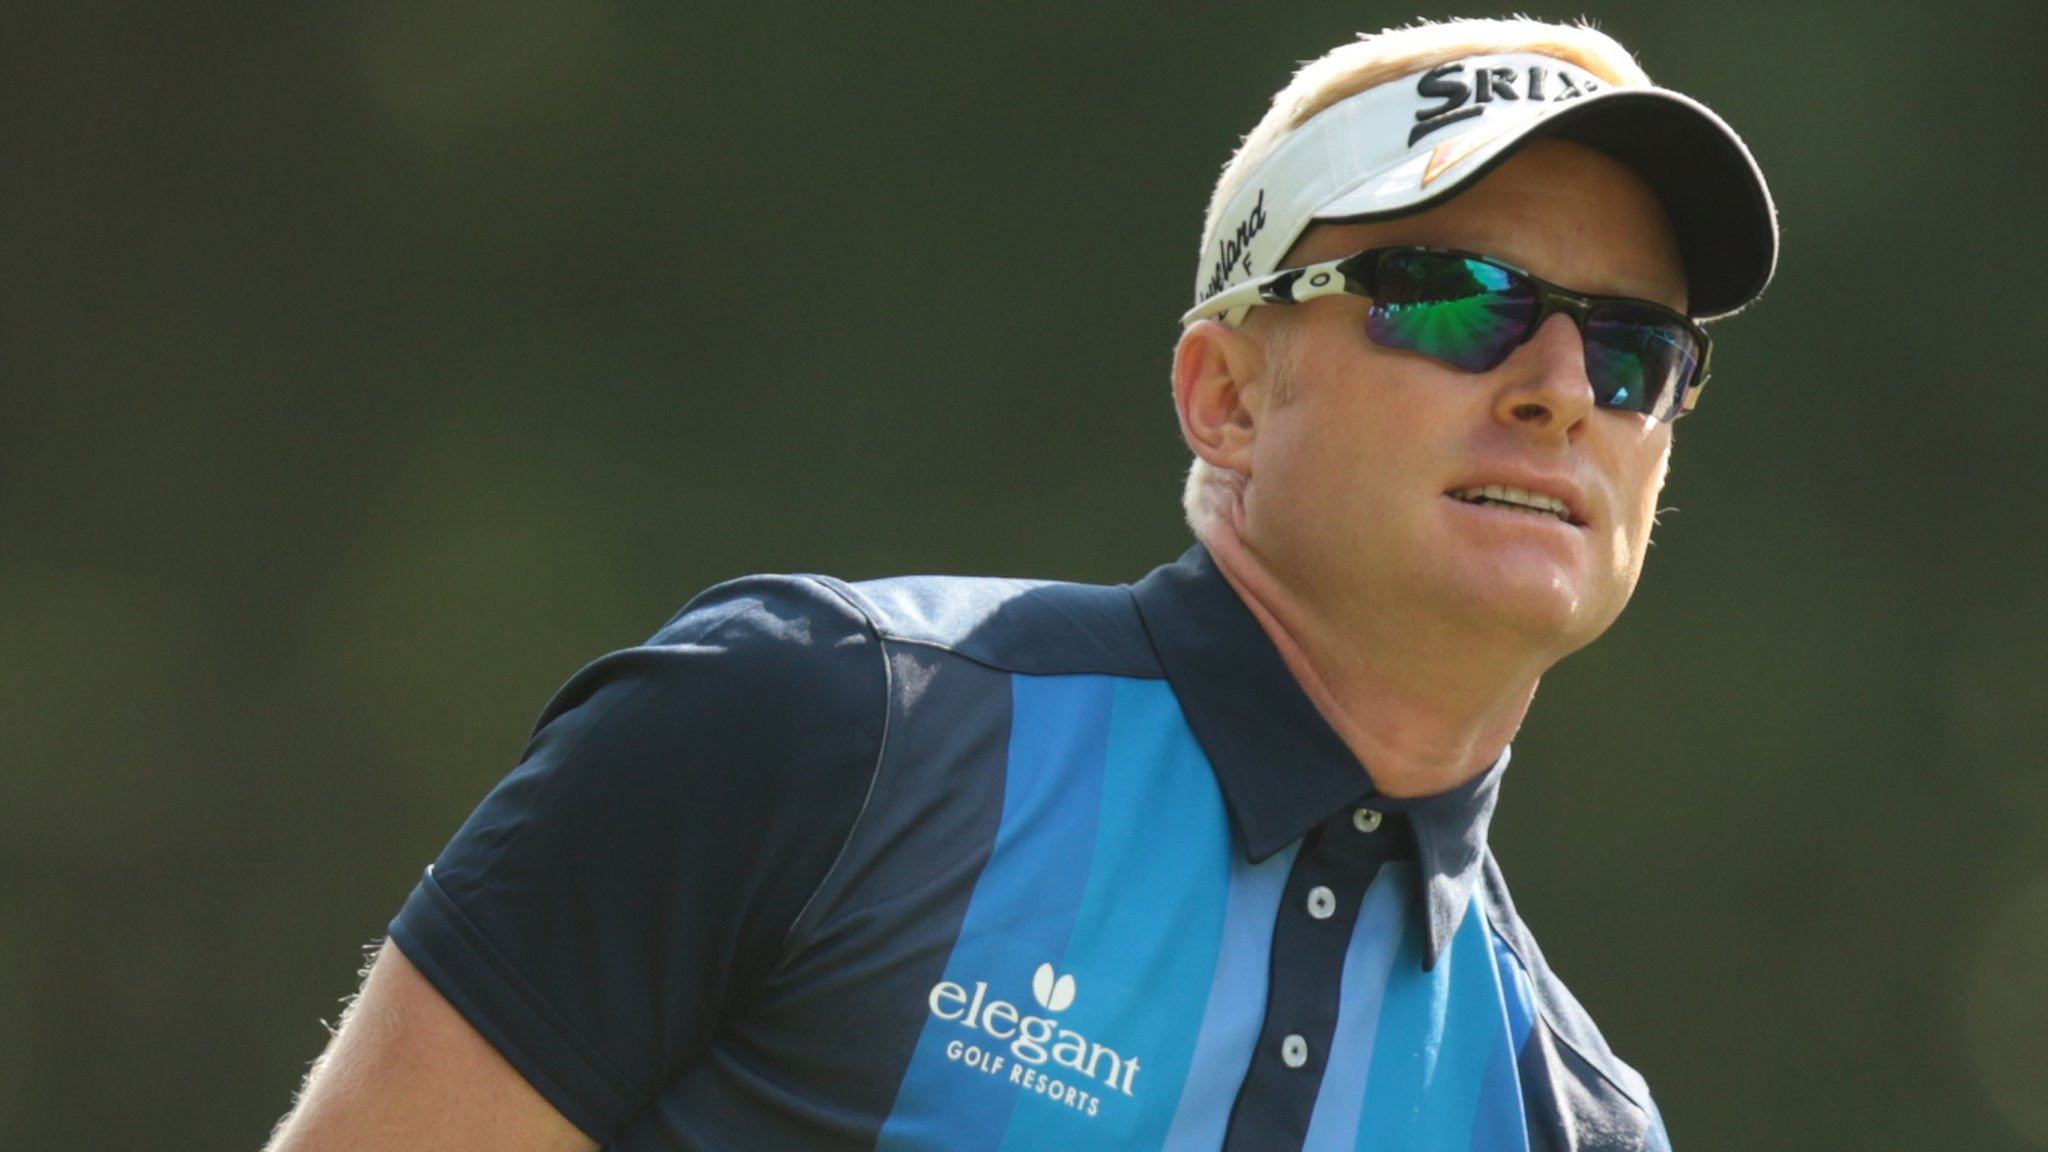 Simon Dyson: Former European Top 10 golfer retires to concentrate on coaching